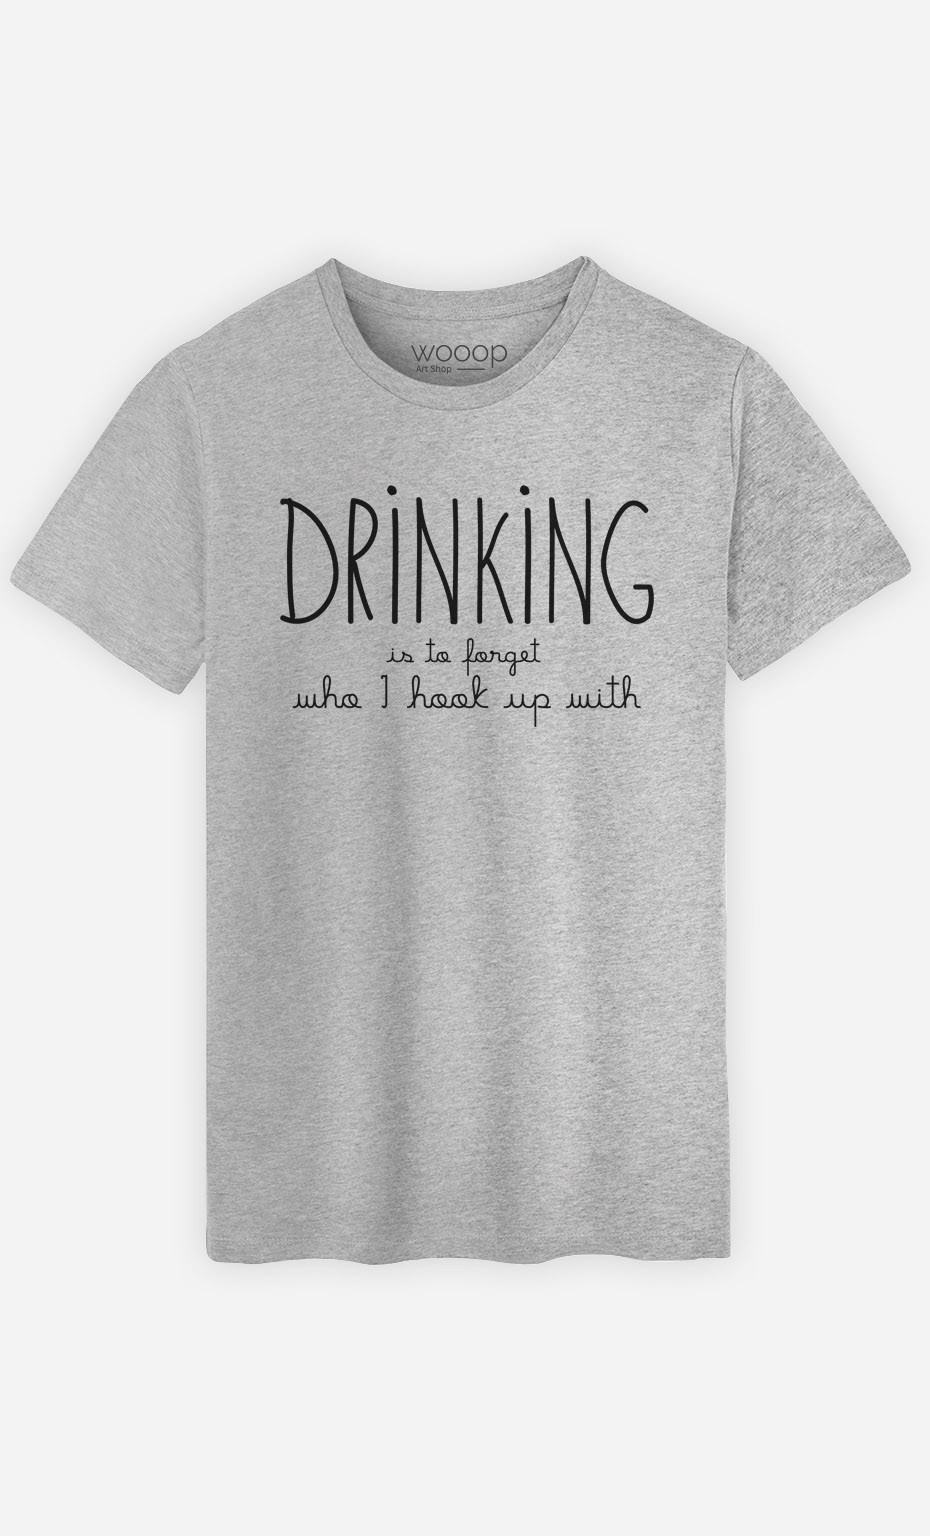 T-Shirt Drinking is to forget who I hook up with